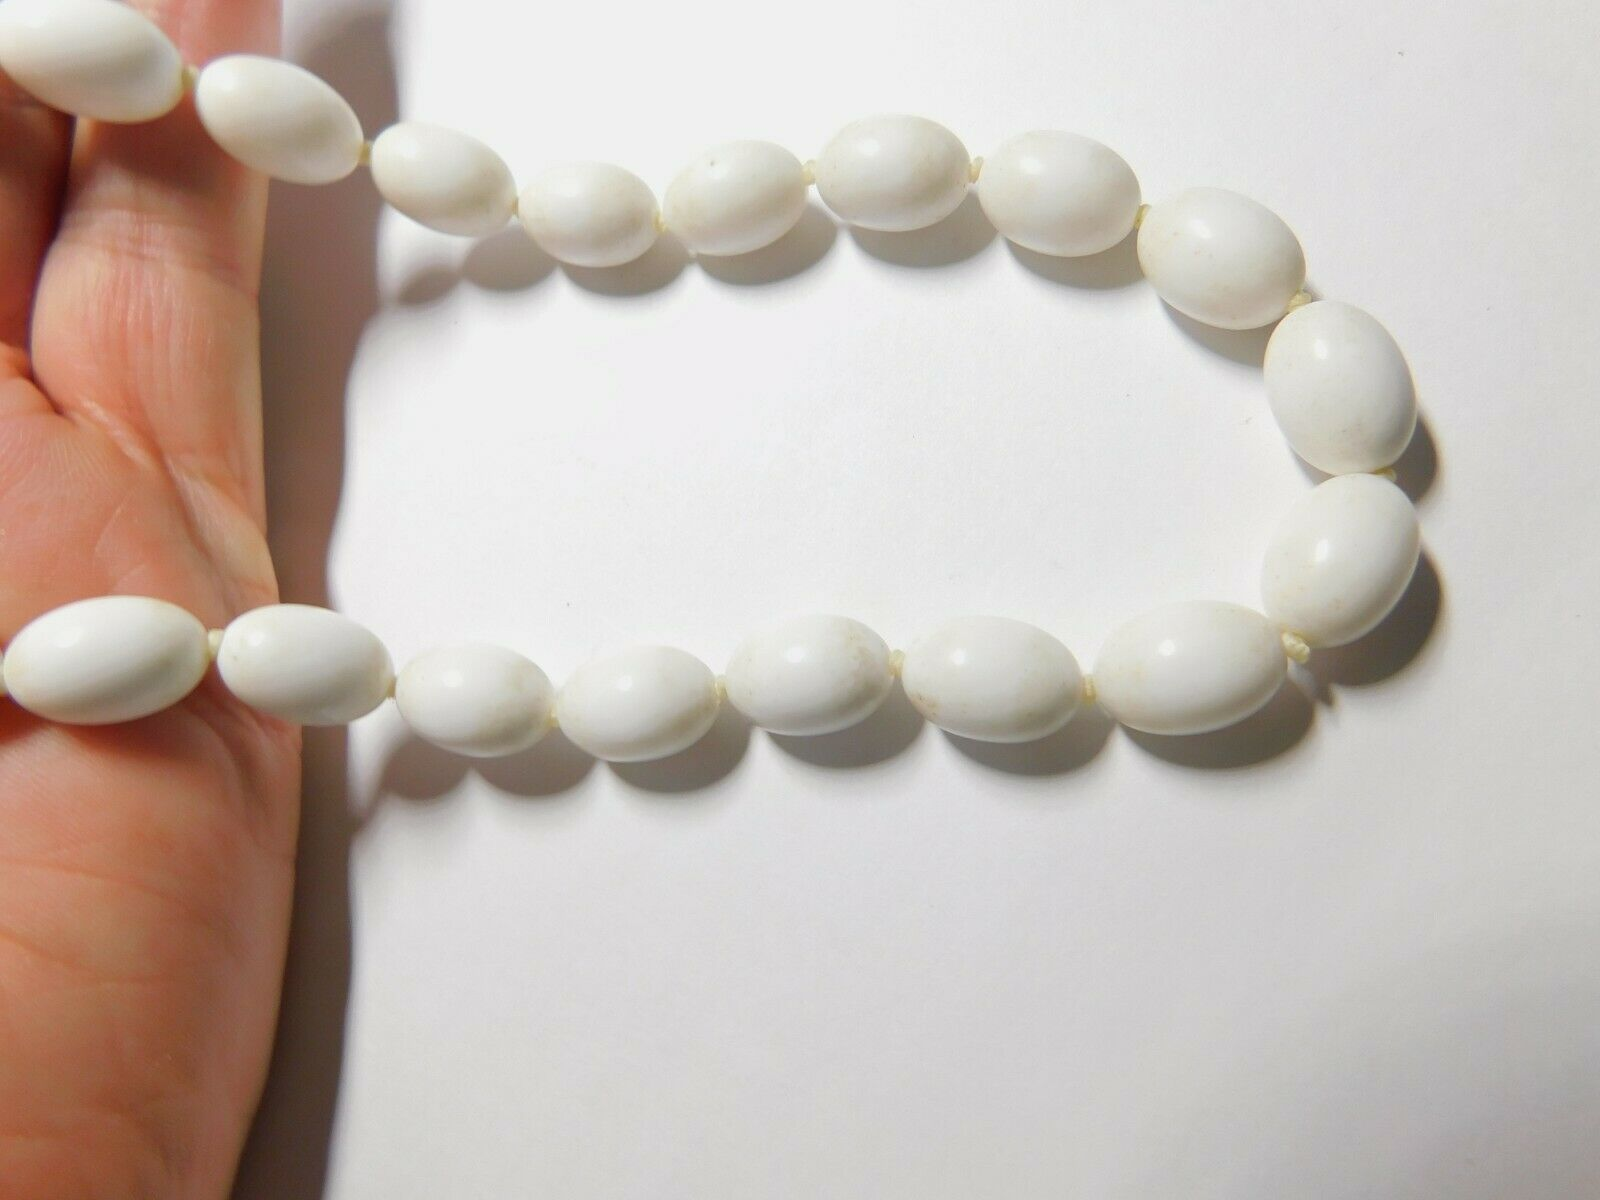 White Lucite Oval Beaded Necklace Vintage Plastic Beads Hand Knotted Vintage Necklace Gold Tone Metal Clasp